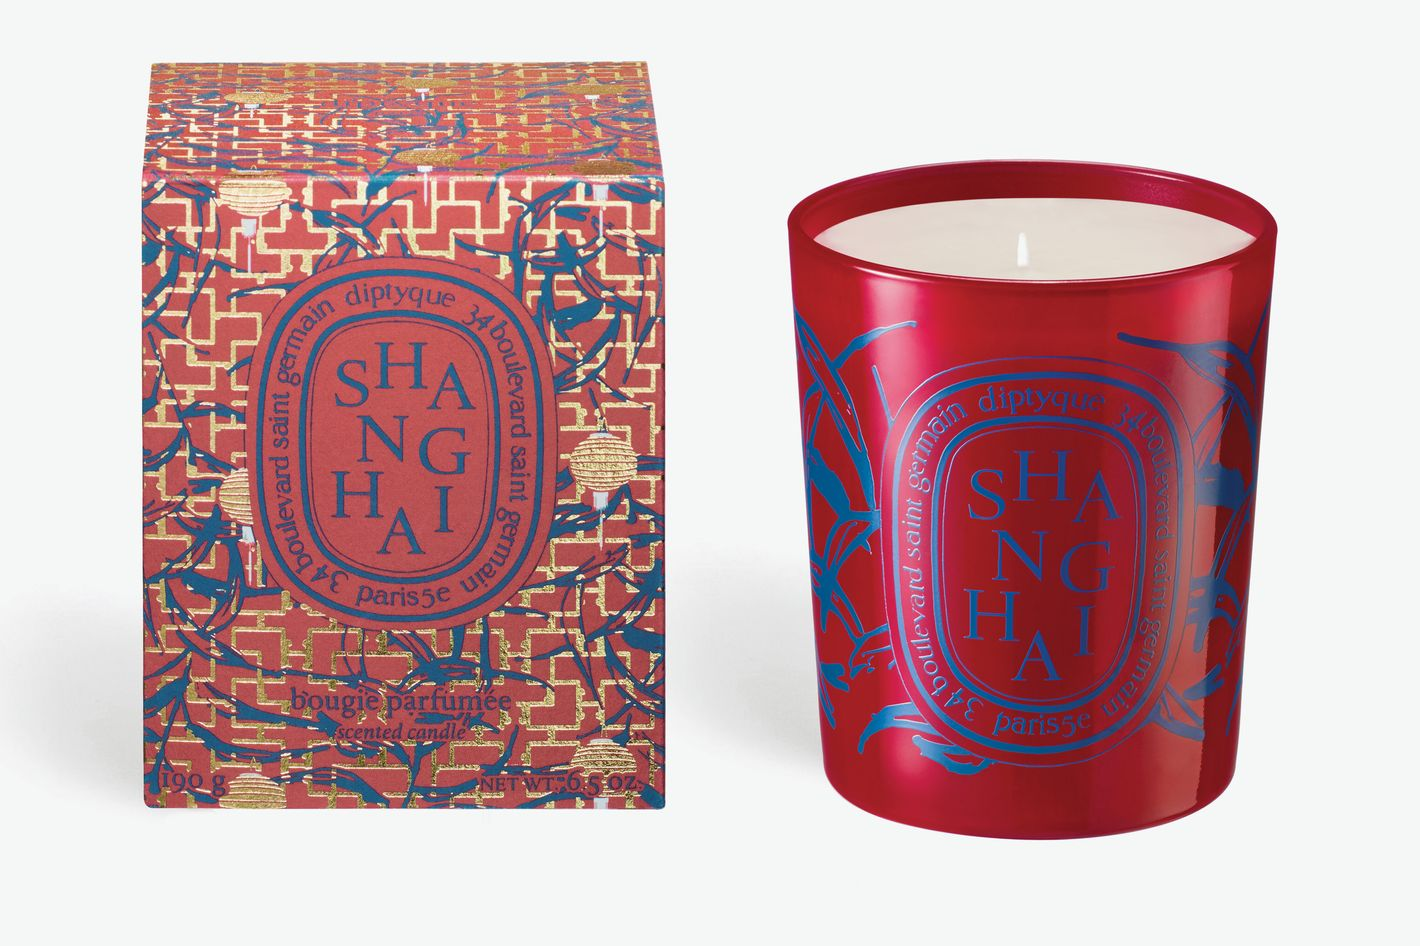 Shanghai Scented Candle